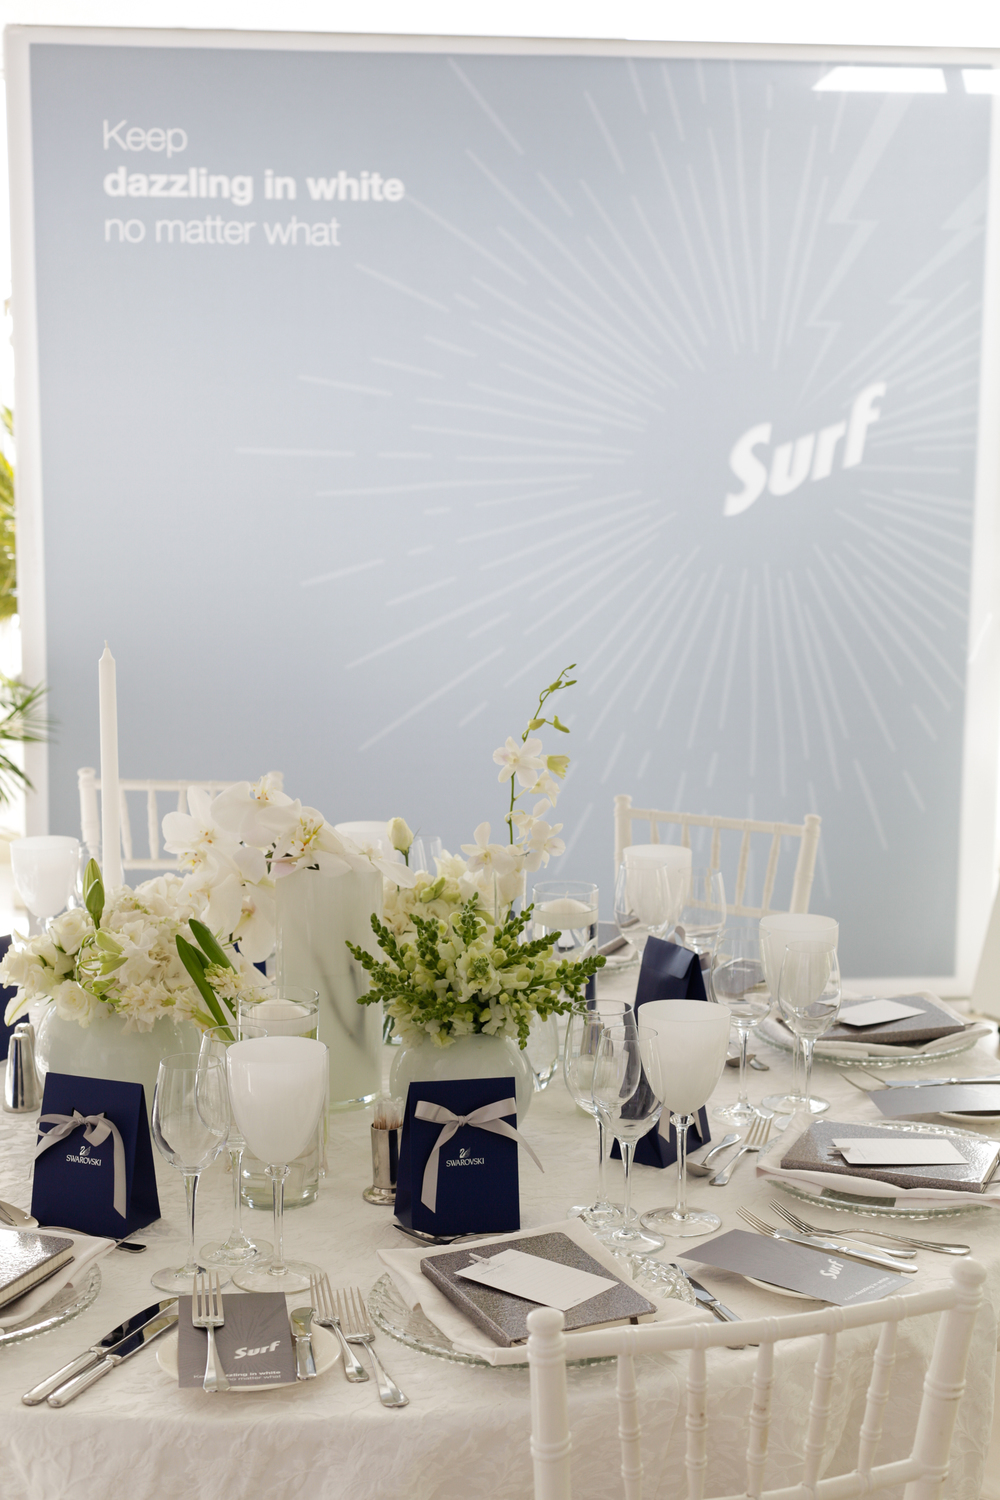 surf-media-launch-decor-3.jpg